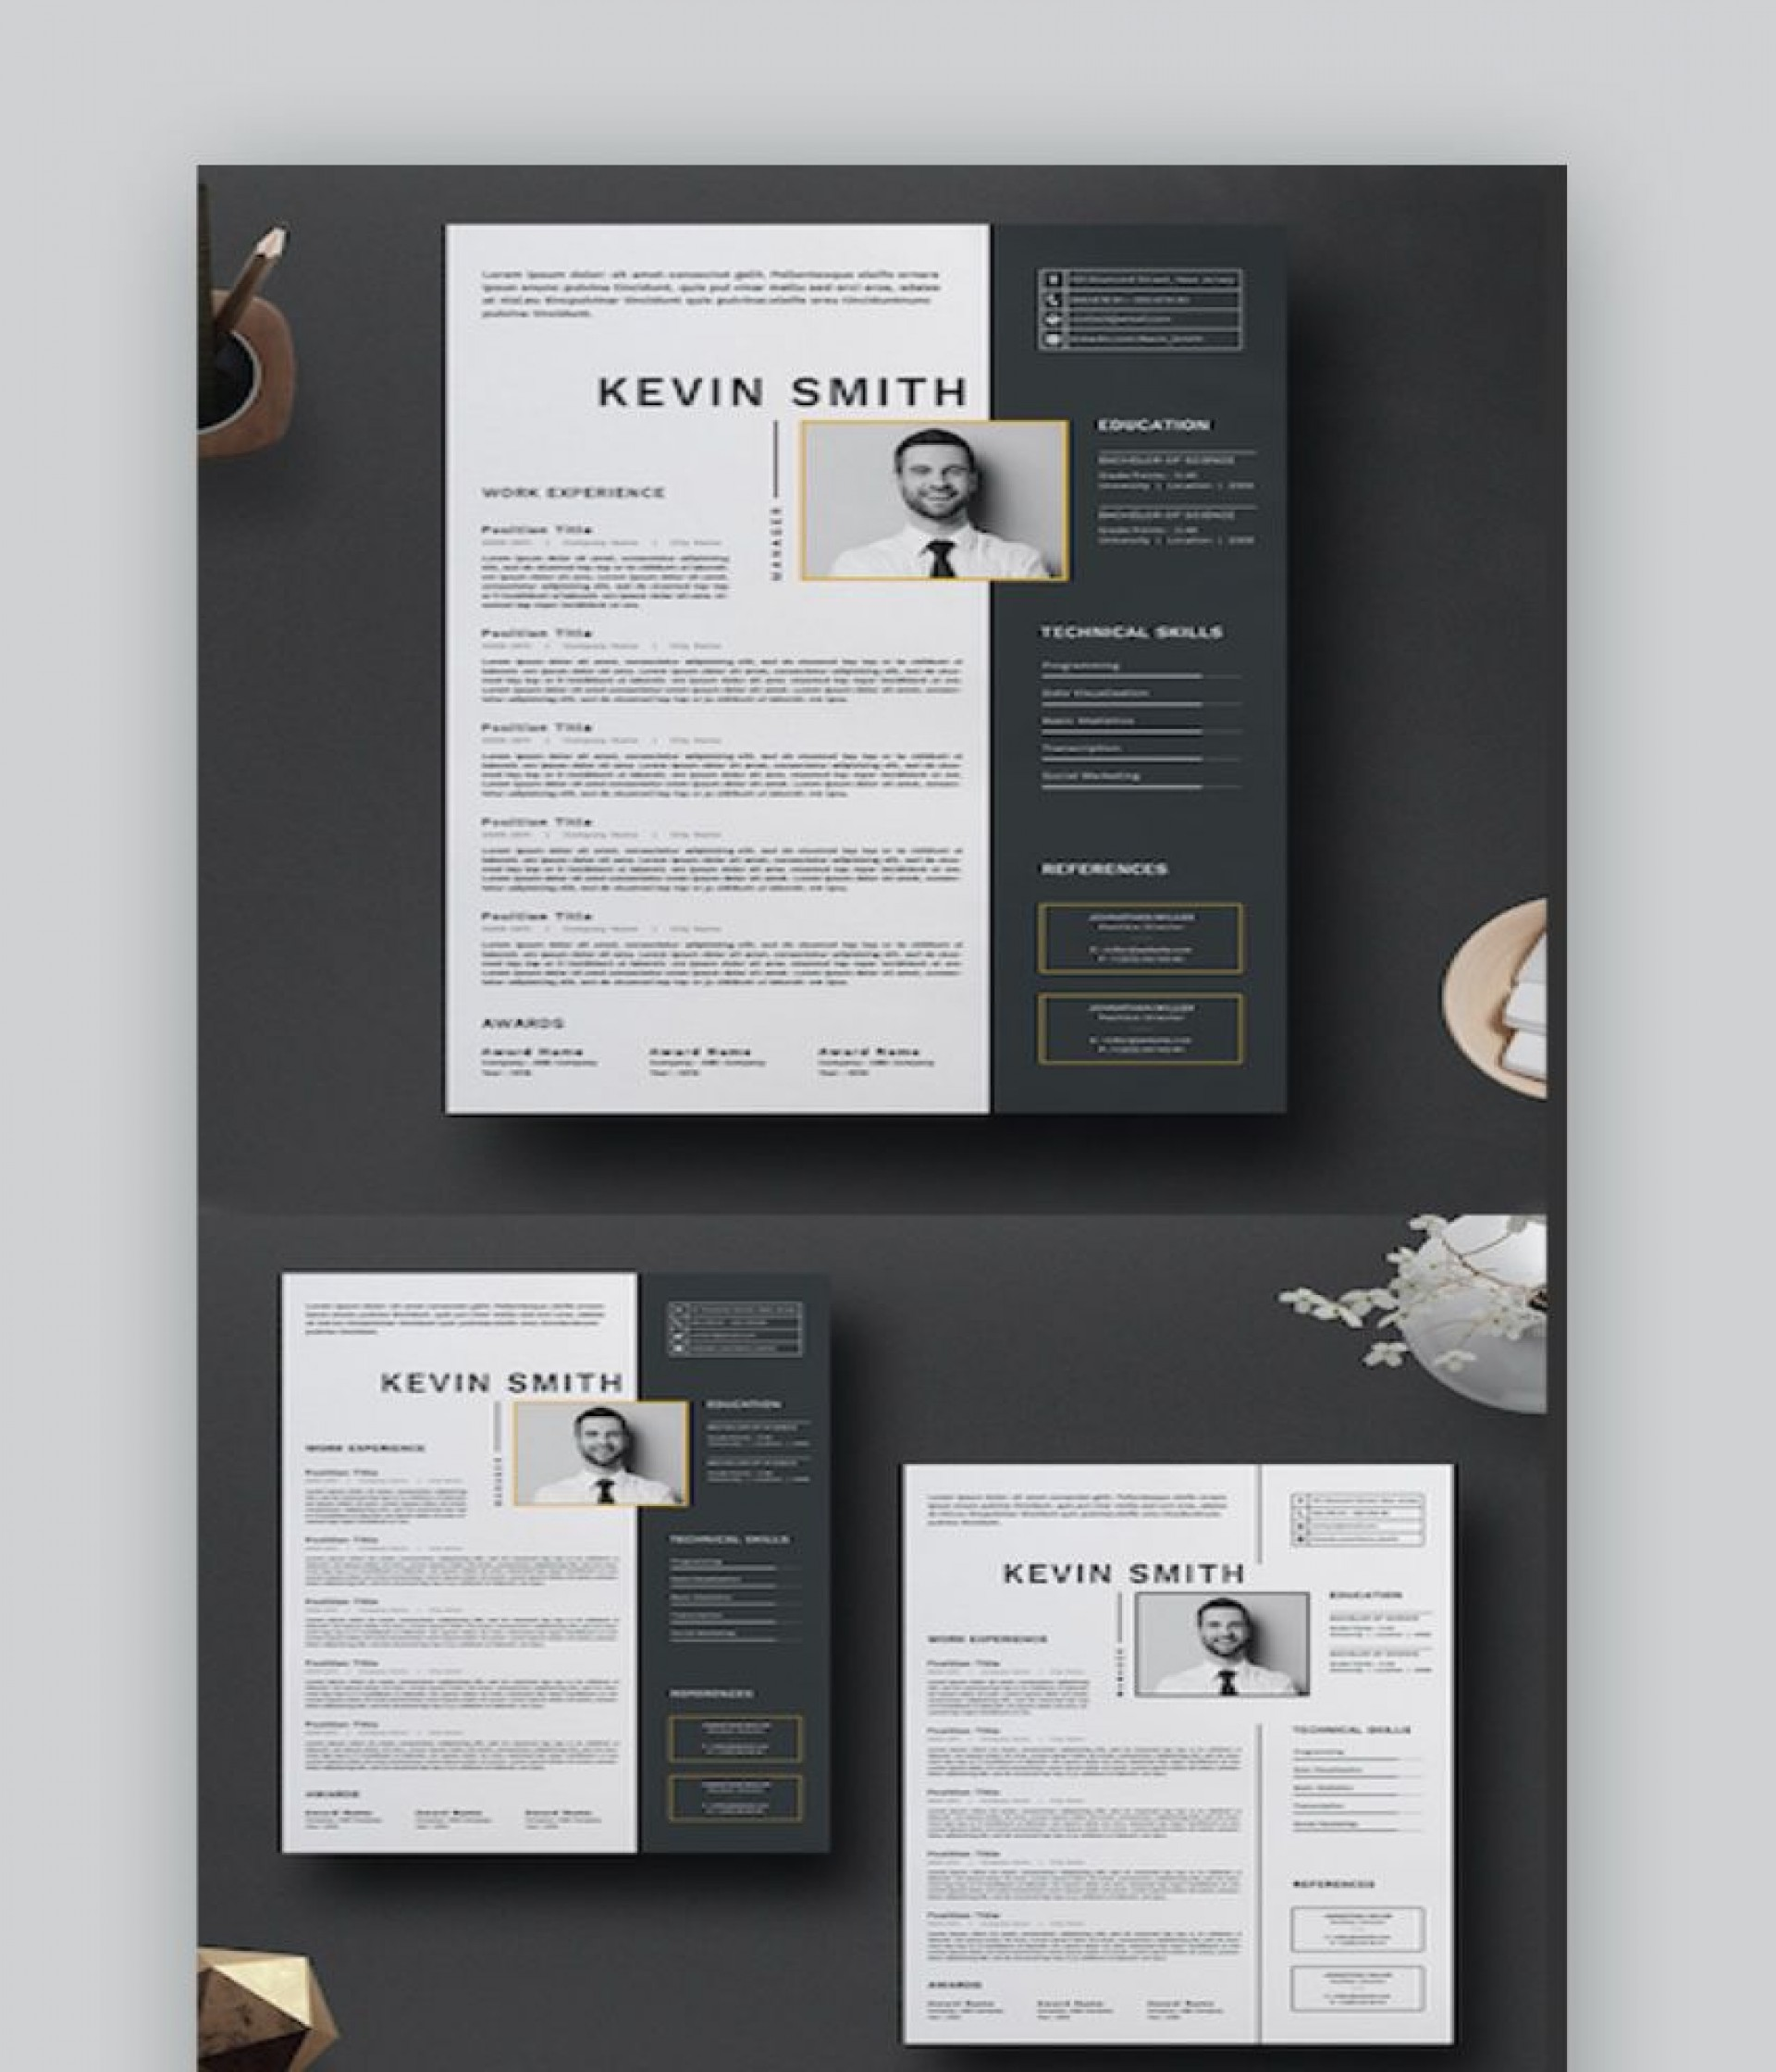 007 Dreaded Adobe Photoshop Resume Template Free Image  Download1920